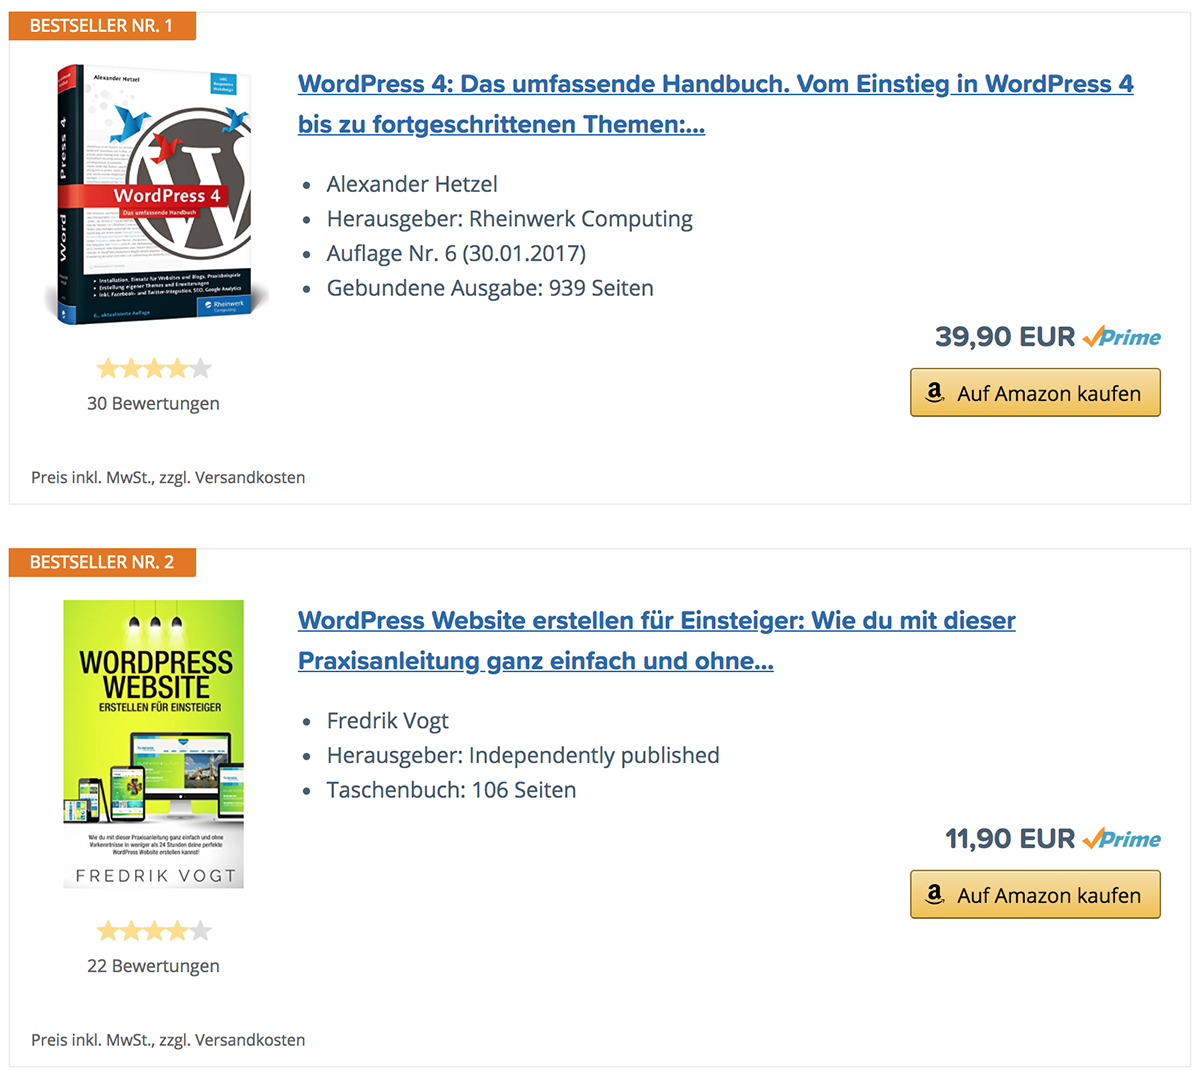 Bestseller-Listen aus dem Amazon Affiliate-Plugin AAWP